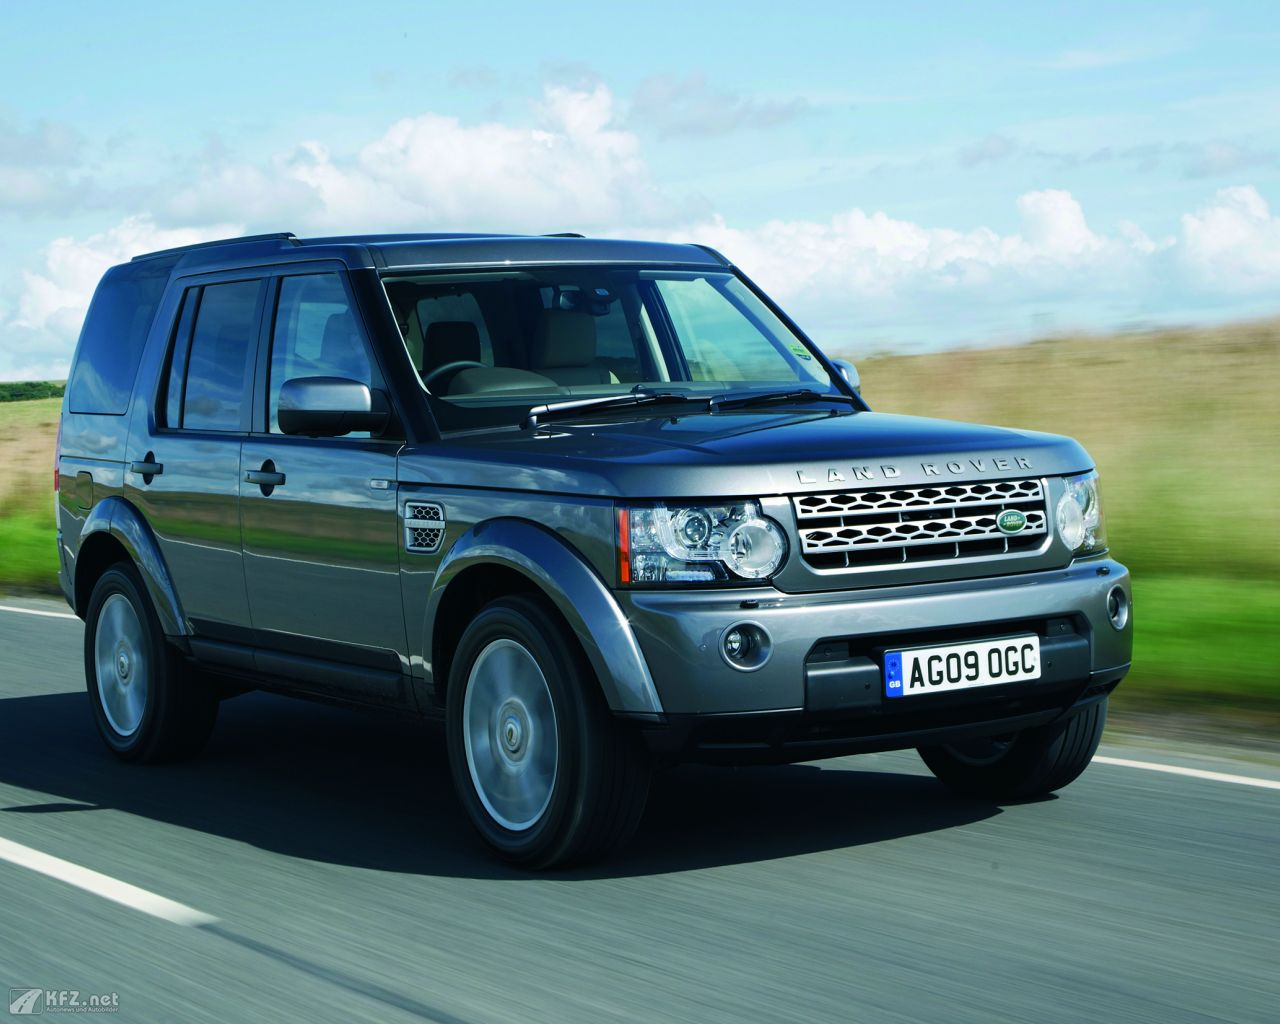 land-rover-discovery-1280x1024-4